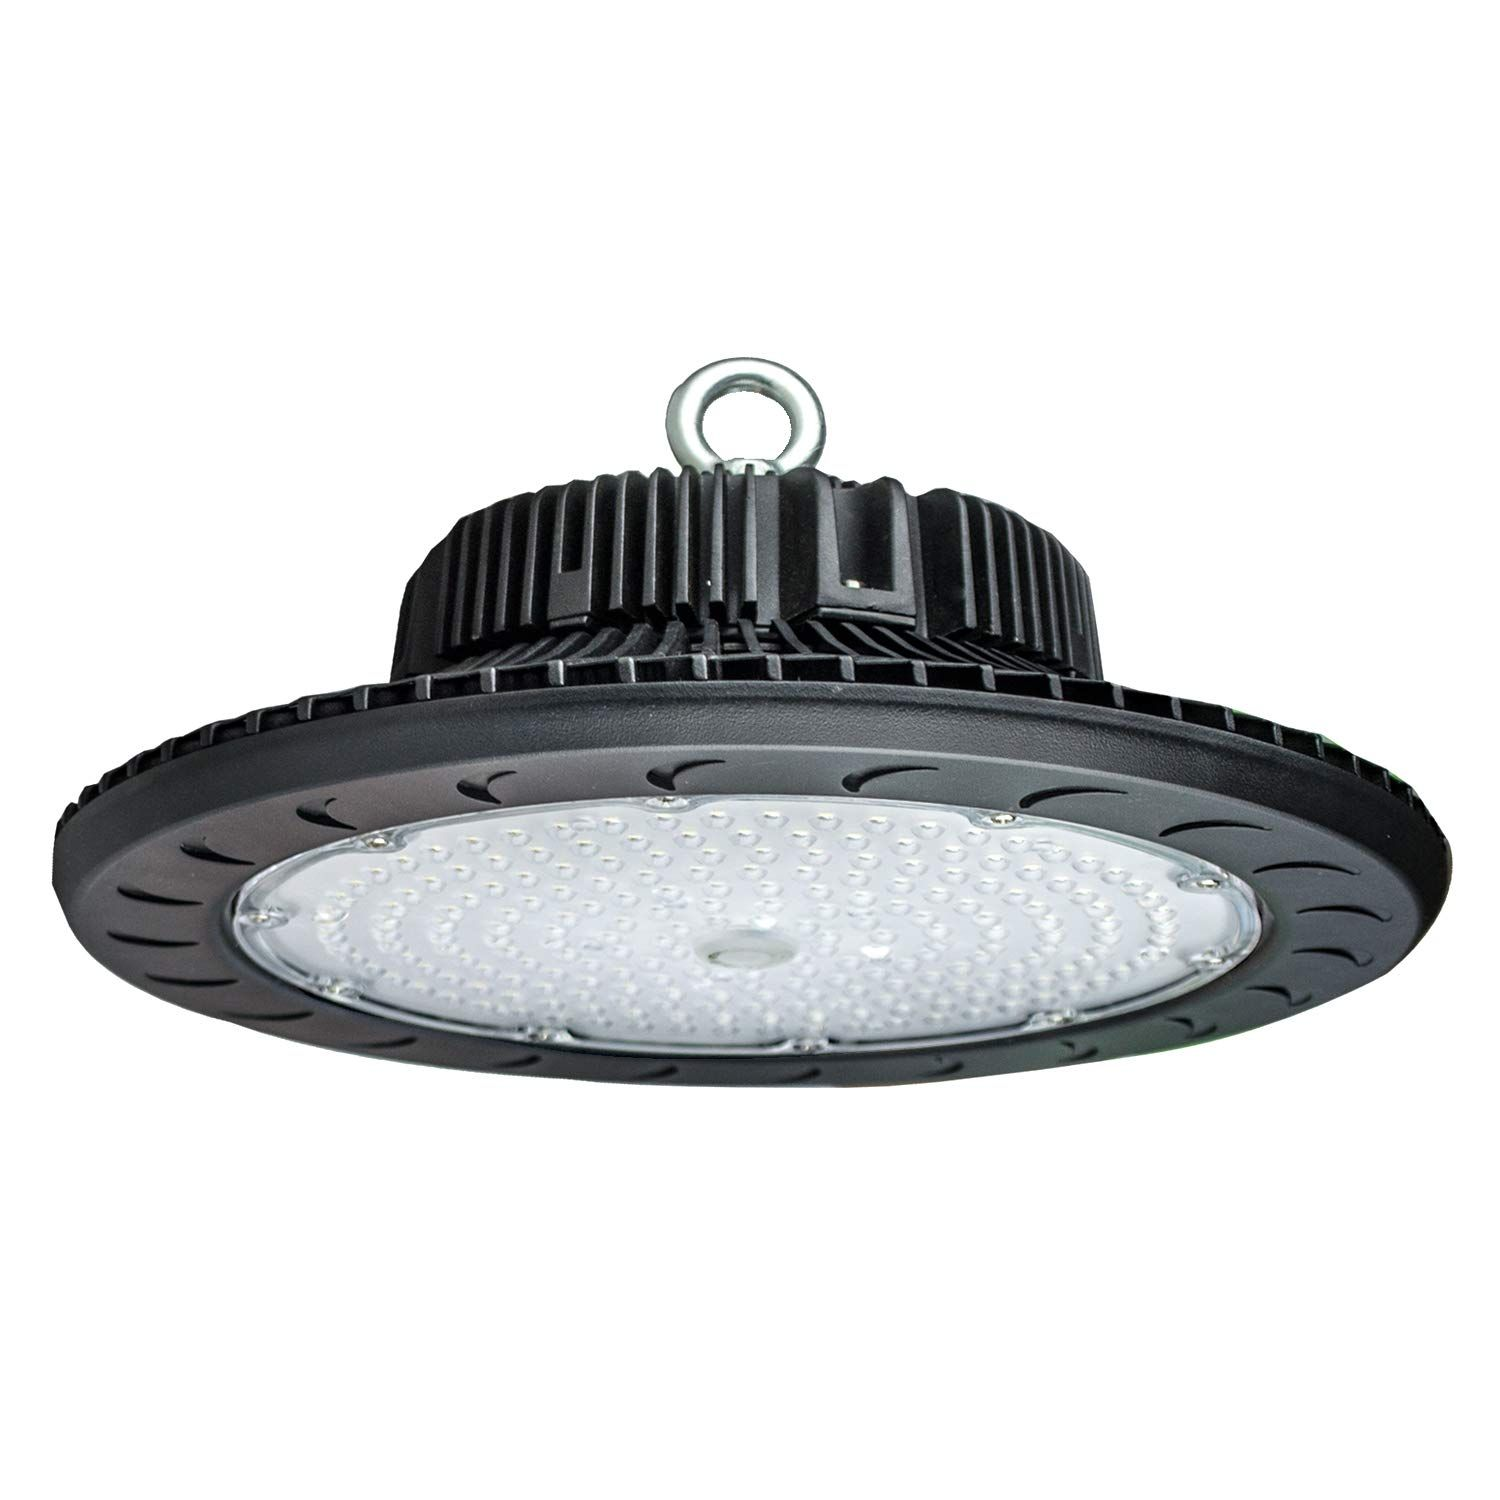 Led High Bay Light 150w 5500k Daylight White Color 500 600w Hps Equivalent For Commercial And Industrial Light In 2020 Bay Lights High Bay Lighting Factory Lighting